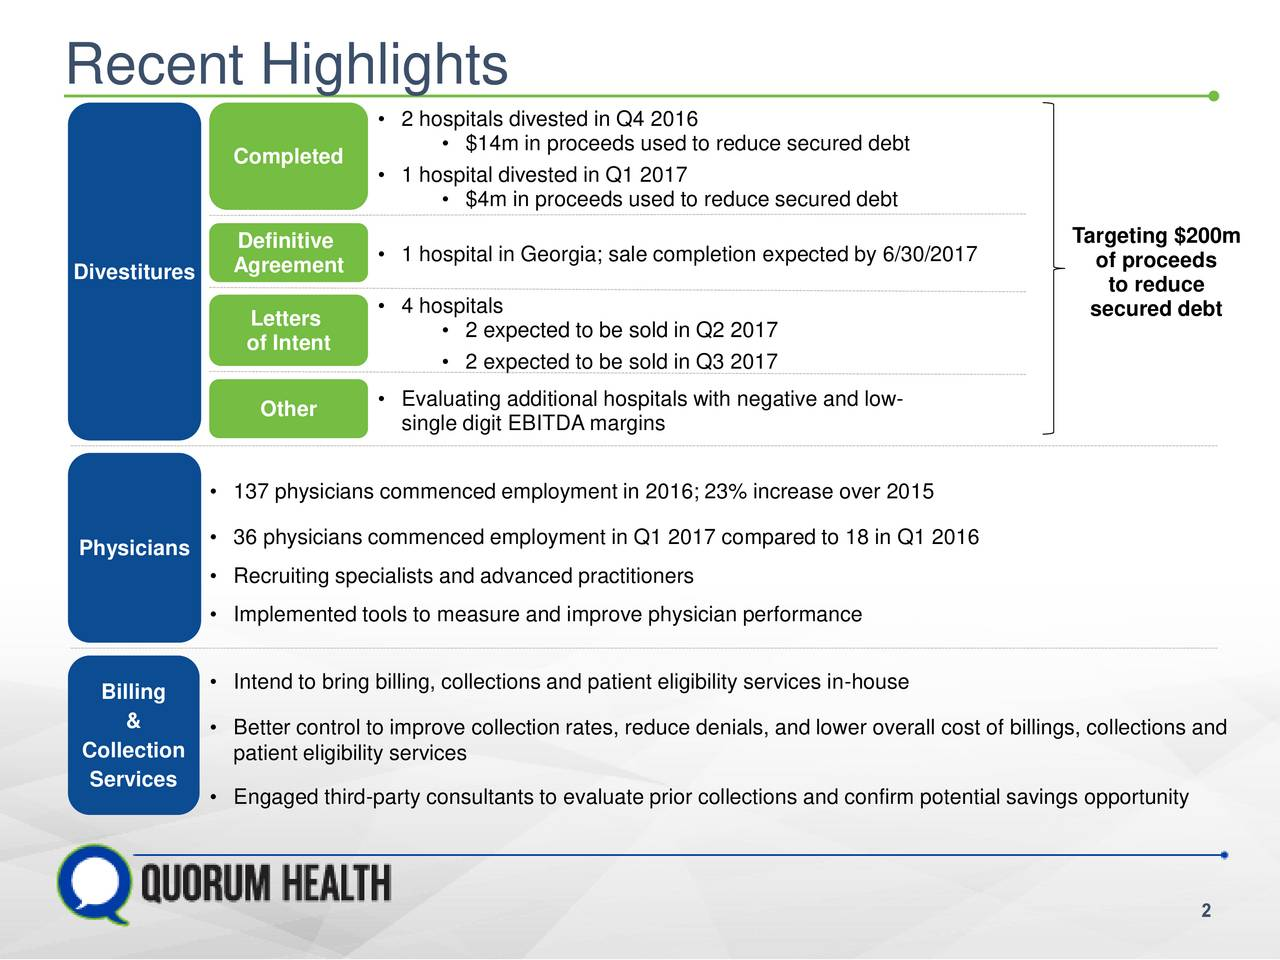 76 203 189 147 237 67 Recent Highlights 2 hospitals divested in Q4 2016 $14m in proceeds used to reduce secured debt 208 63 165 Completed 235 63 165  1 hospital divested in Q1 2017 179 63 165  $4m in proceeds used to reduce secured debt Definitive  1 hospital in Georgia; sale completion expected by 6/30/2017 Divestitures Agreement Letters  4 hospitals of Intent  2 expected to be sold in Q2 2017 2 expected to be sold in Q3 2017 Evaluating additional hospitals with negative and low- Other single digit EBITDA margins 137 physicians commenced employment in 2016; 23% increase over 2015 Physicians  36 physicians commenced employment in Q1 2017 compared to 18 in Q1 2016 Recruiting specialists and advanced practitioners Implemented tools to measure and improve physician performance Intend to bring billing, collections and patient eligibility services in-house Billing &  Better control to improve collection rates, reduce denials, and lower overall cost of billings, collections and Collection patient eligibility services Services Engaged third-party consultants to evaluate prior collections and confirm potential savings opportunity